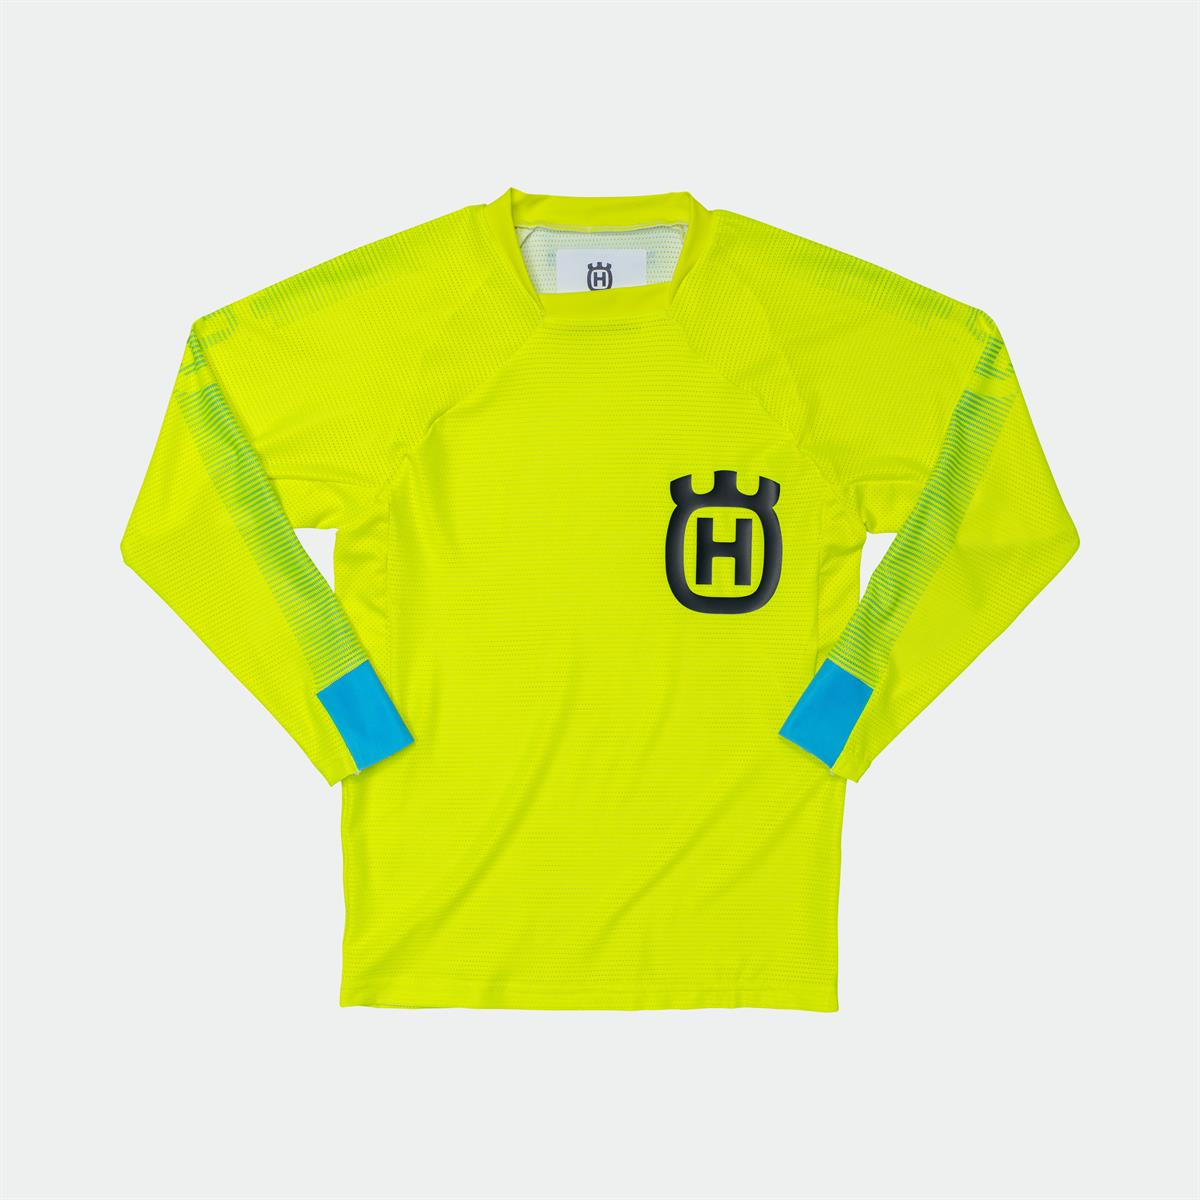 Husqvarna Motorcycles - 2019 Functional Clothing Kids Collection - KIDS RAILED SHIRT